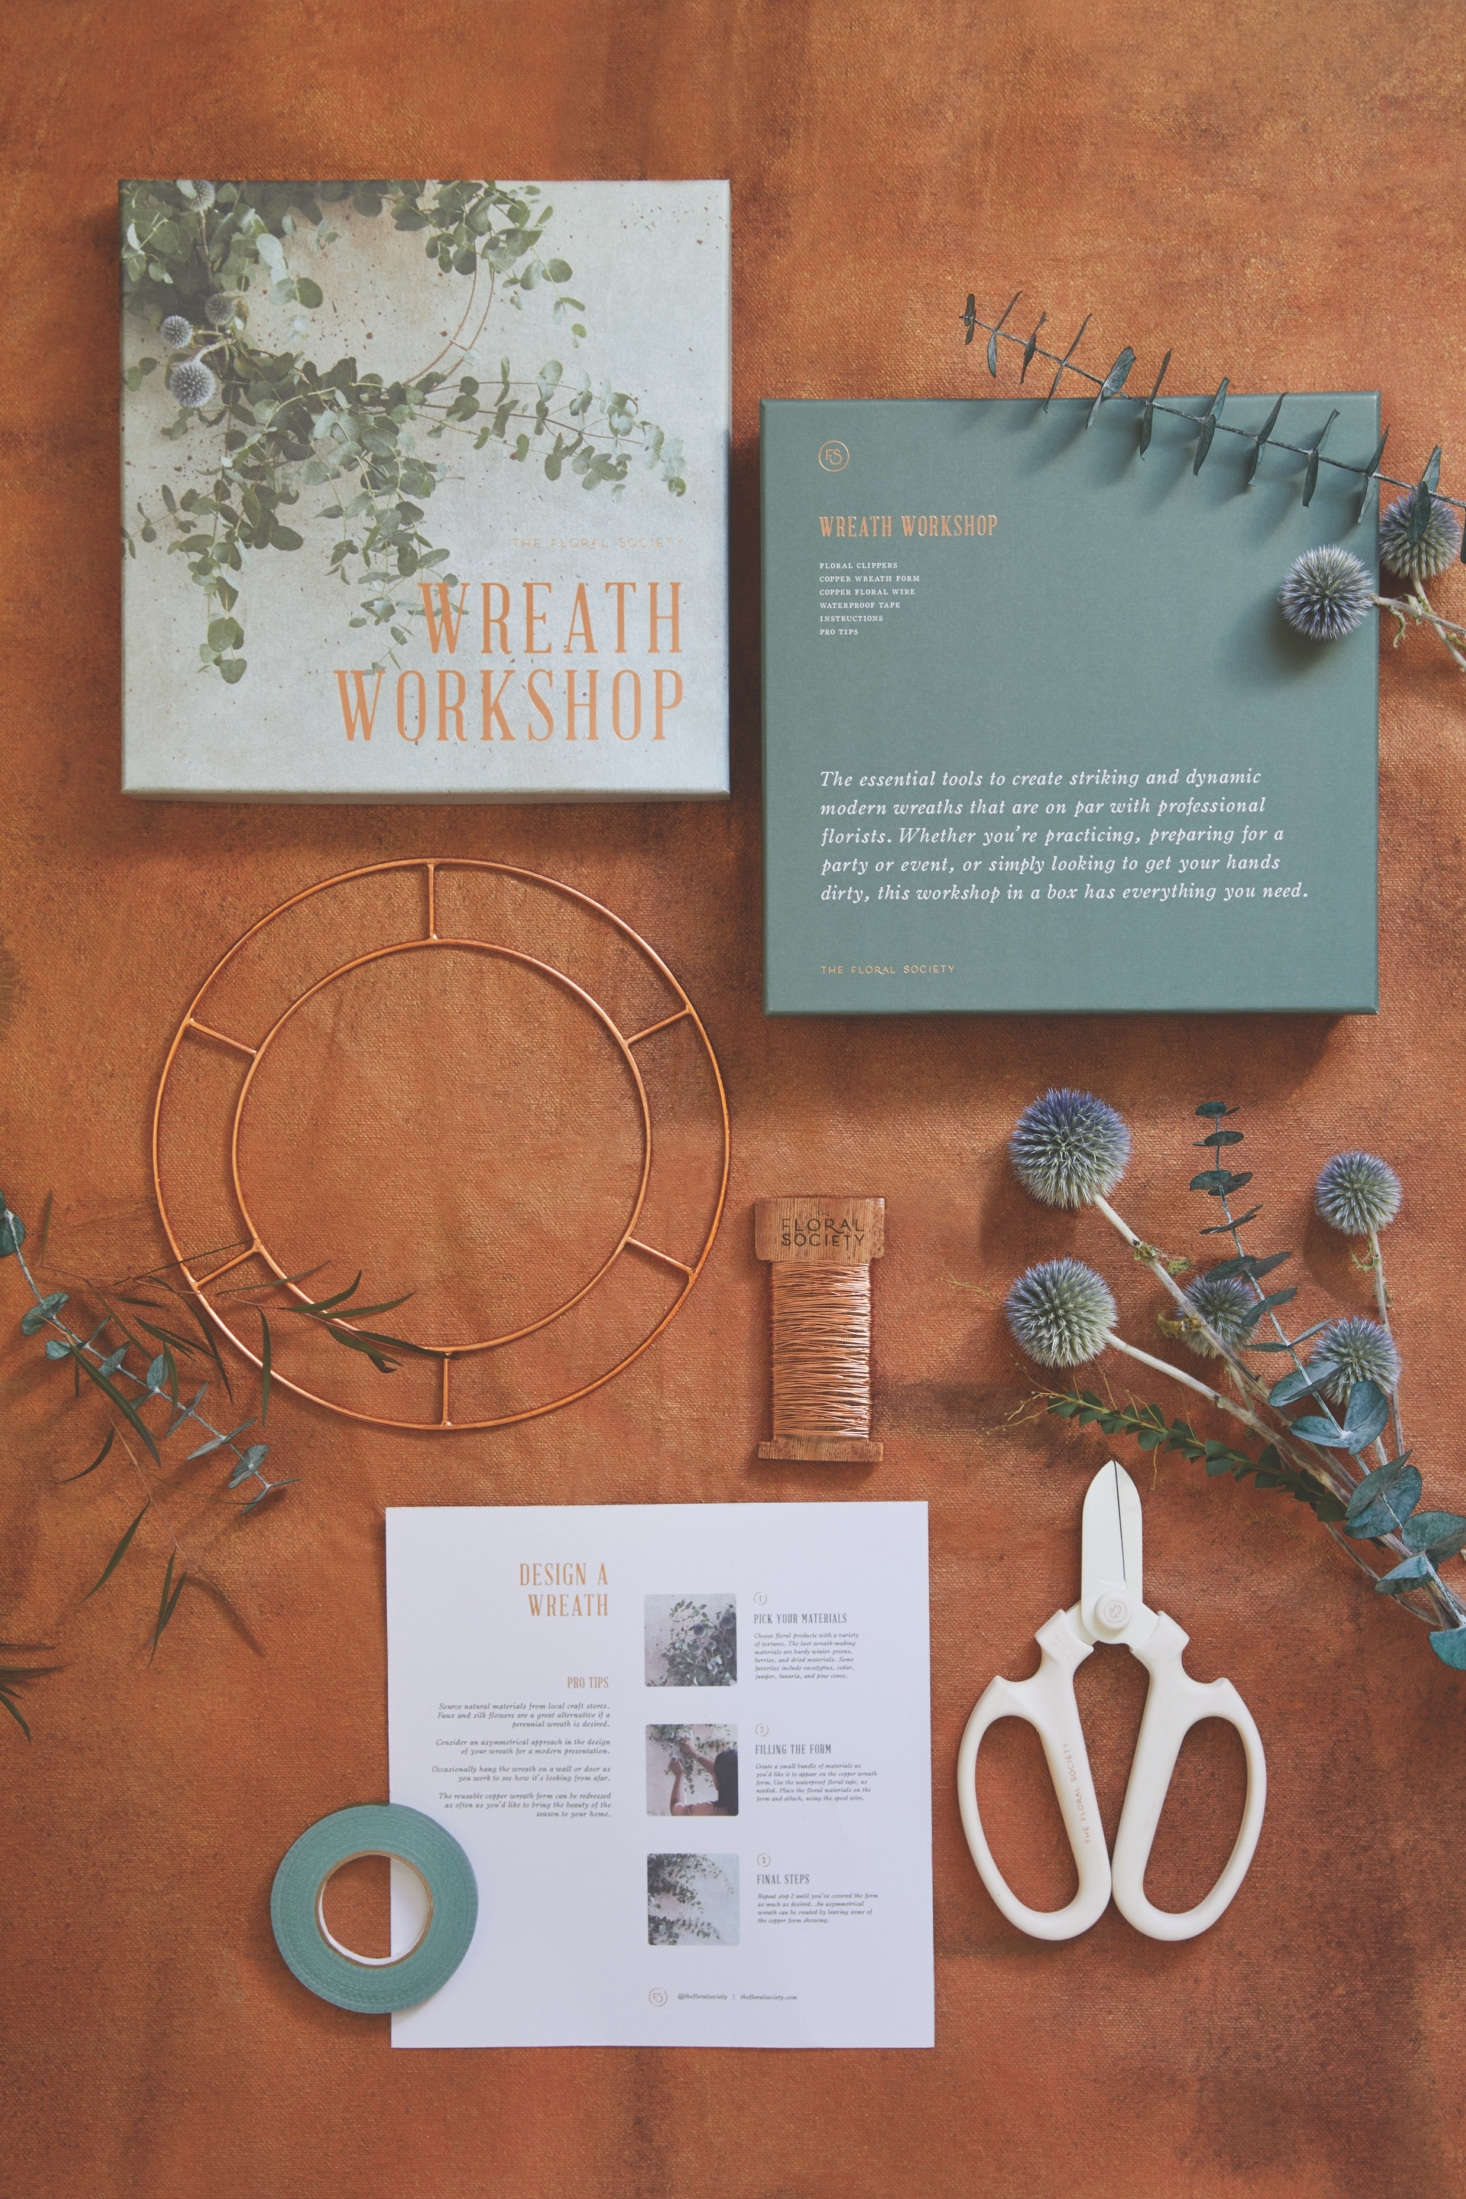 The Wreath Workshop, $86, contains, among other things, a copper wreath form, wire, and instructions for making inventive seasonal wreaths. Online wreath-making tutorials are also available to kit owners.